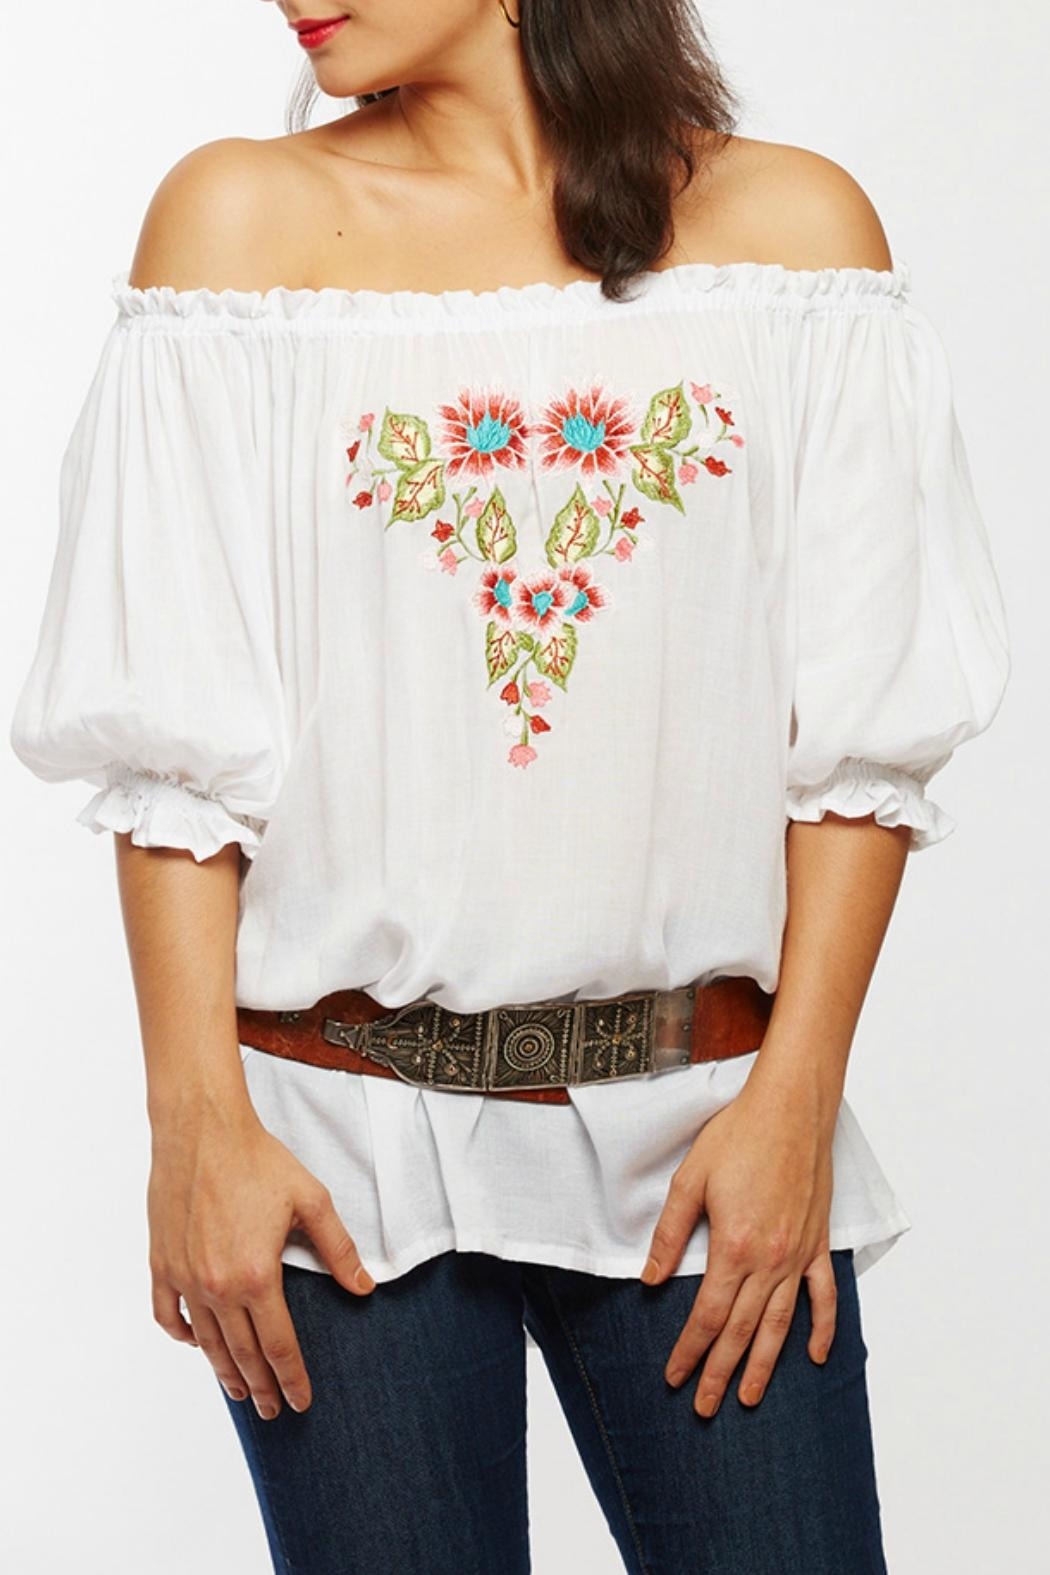 Beth Friedman Embroidered Tunic Top - Main Image